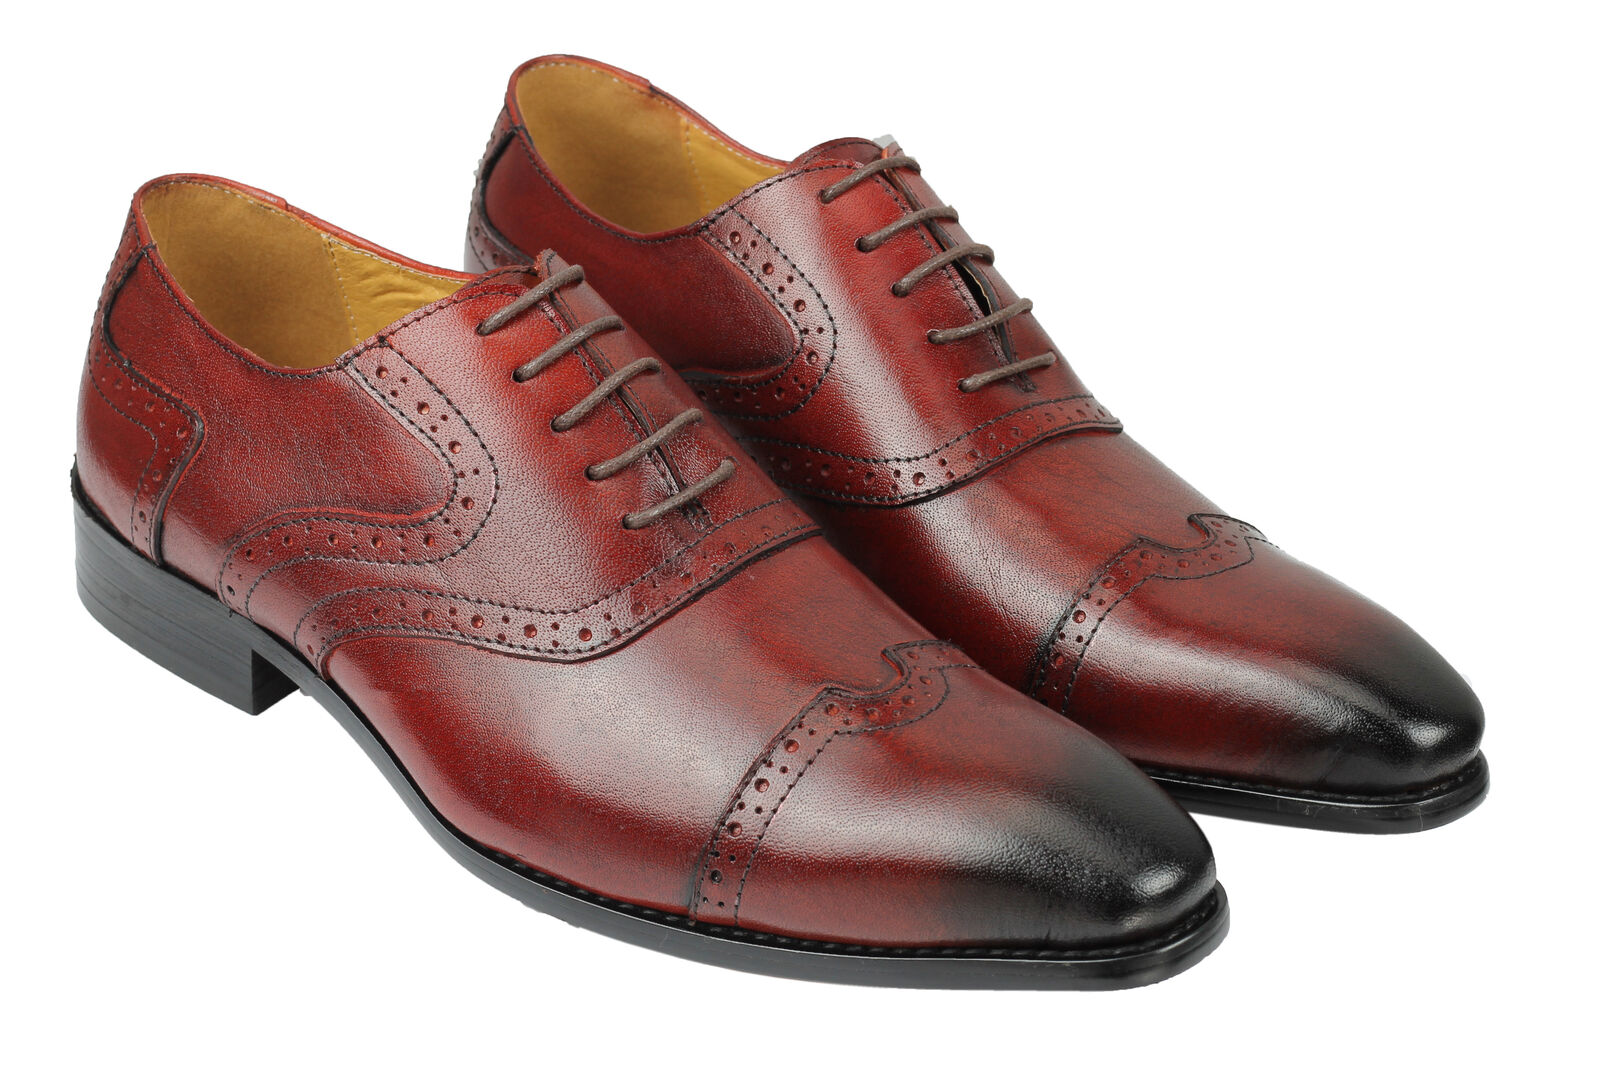 Mens Retro Vintage Maroon Real Leather Lace up Smart Formal schuhe 6 7 8 9 10 11